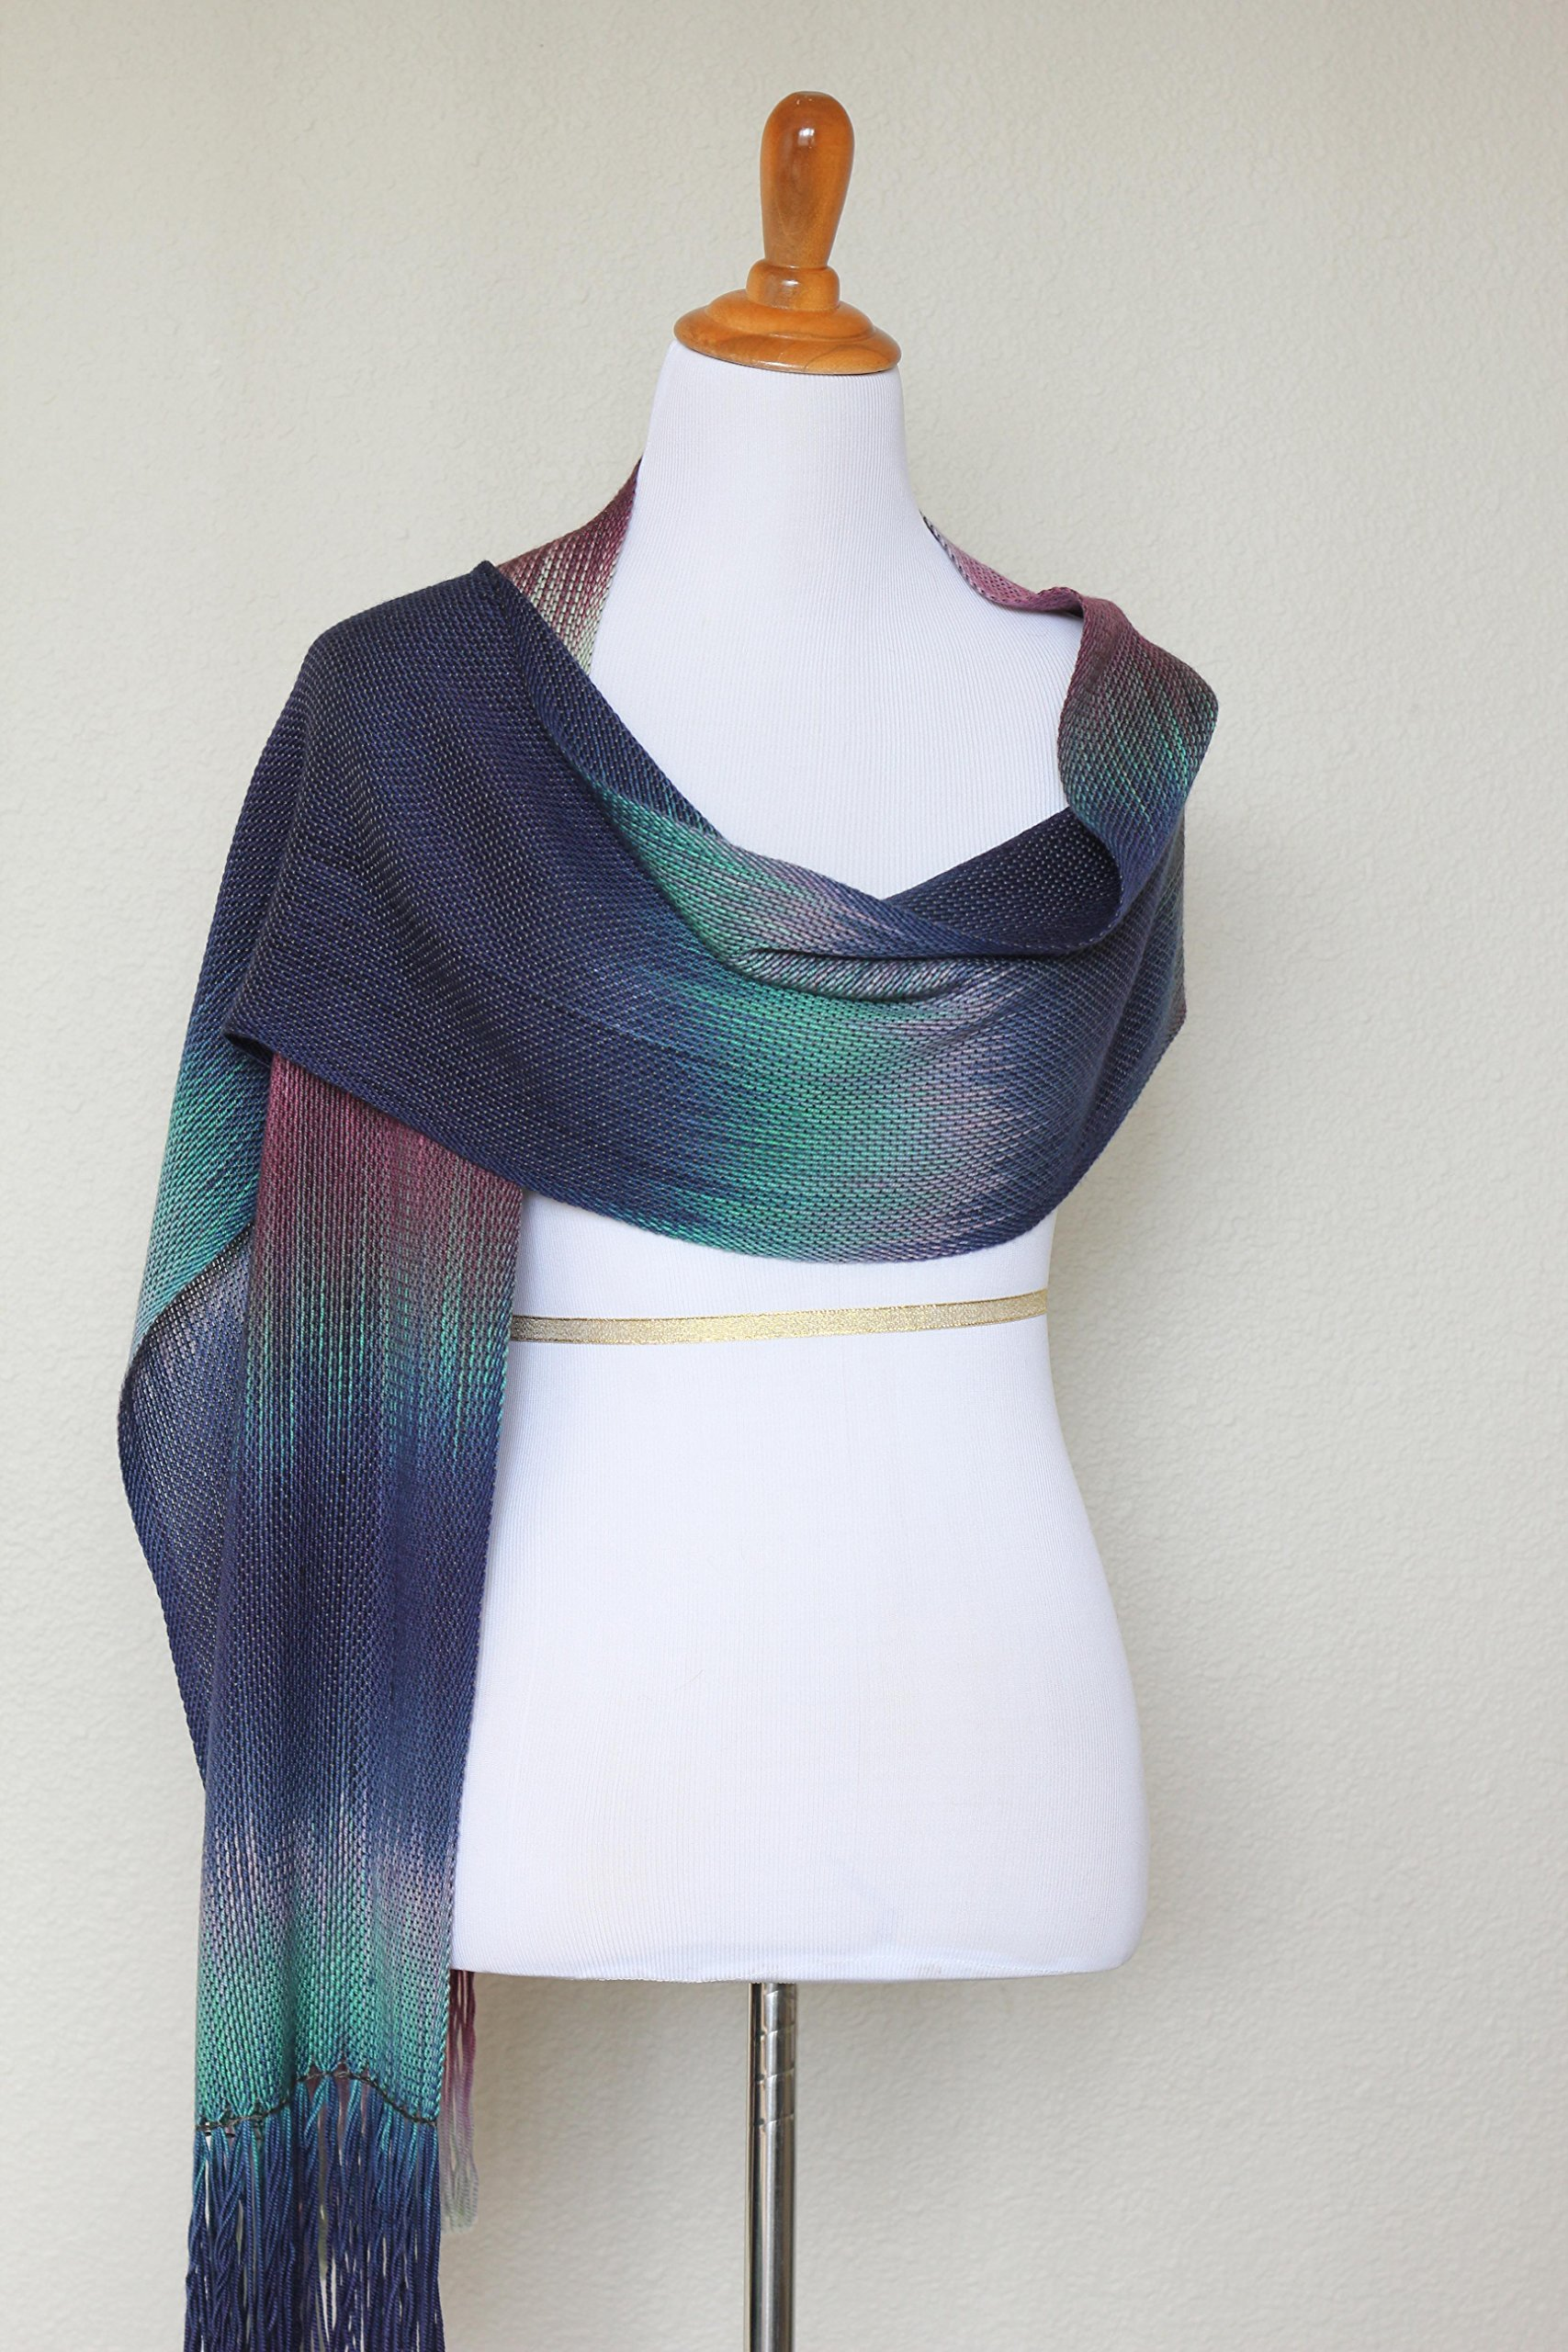 Woven scarf, pashmina scarf in purple, navy and green colors, gift for her, gift for him, scarf with fringe